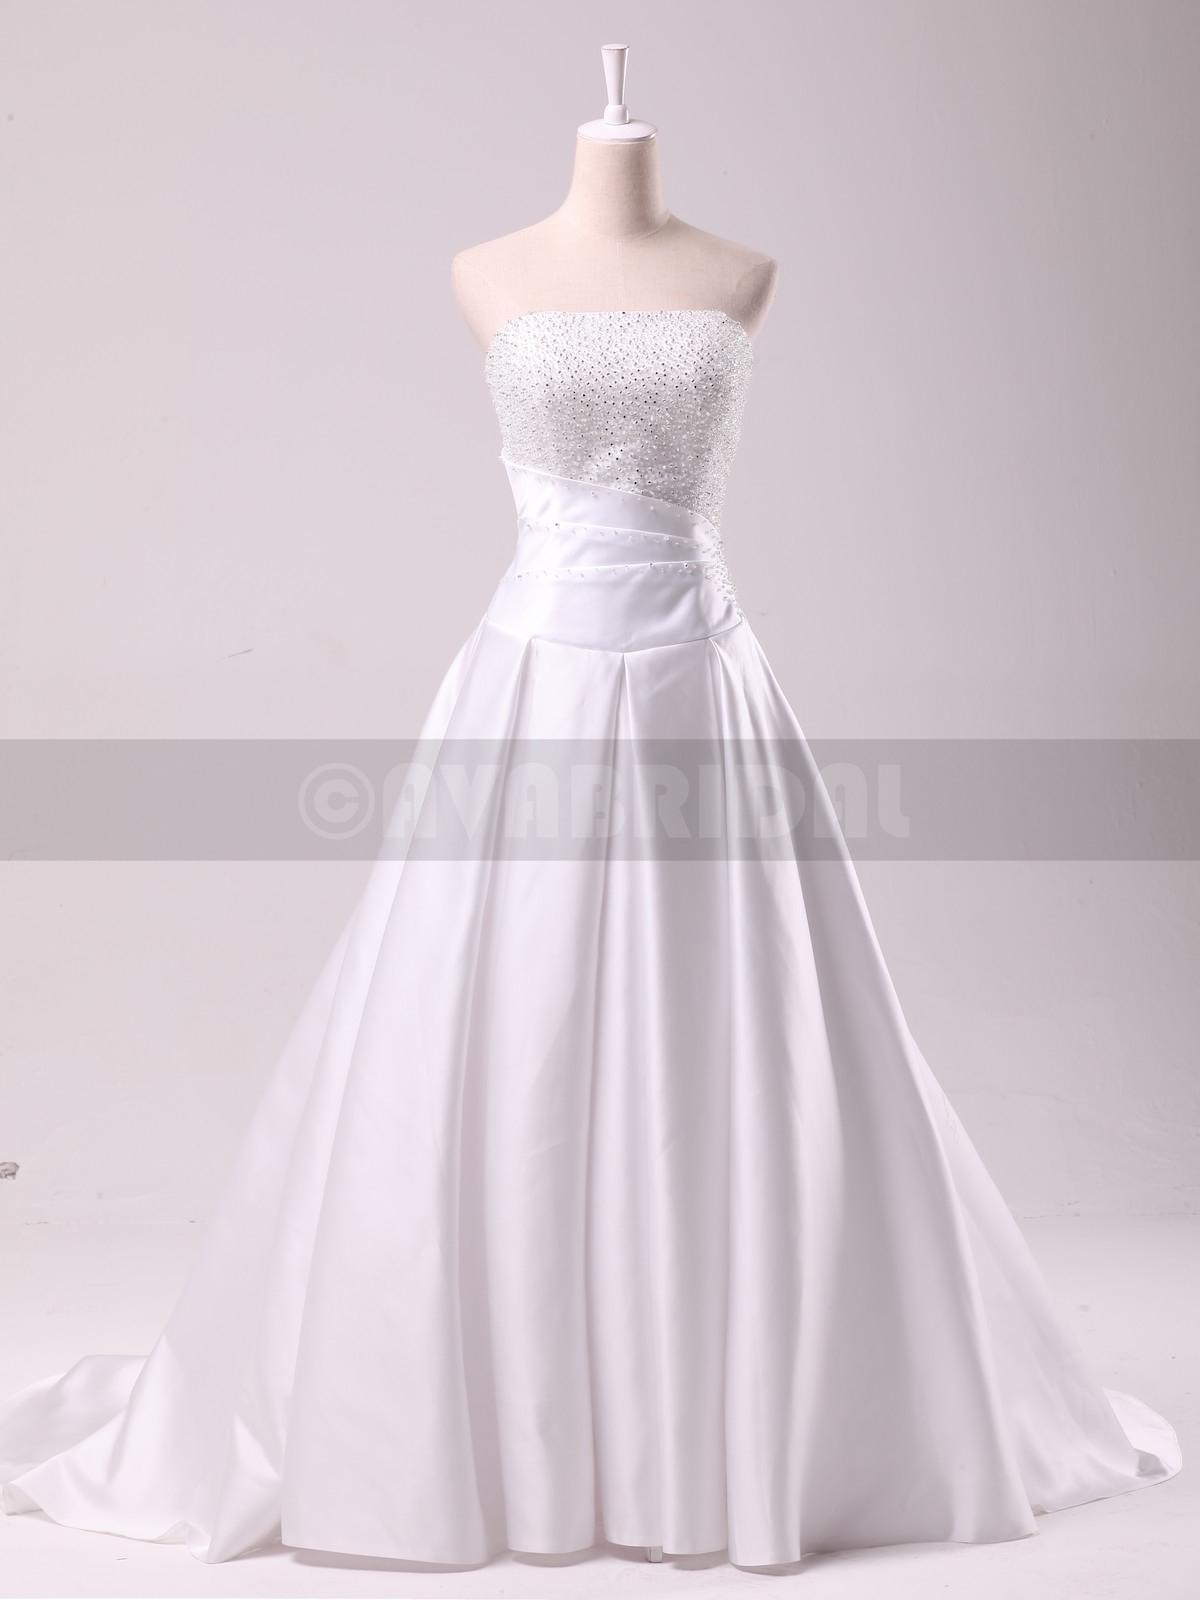 Stunning Beaded Sain Wedding Dress-W843-Front